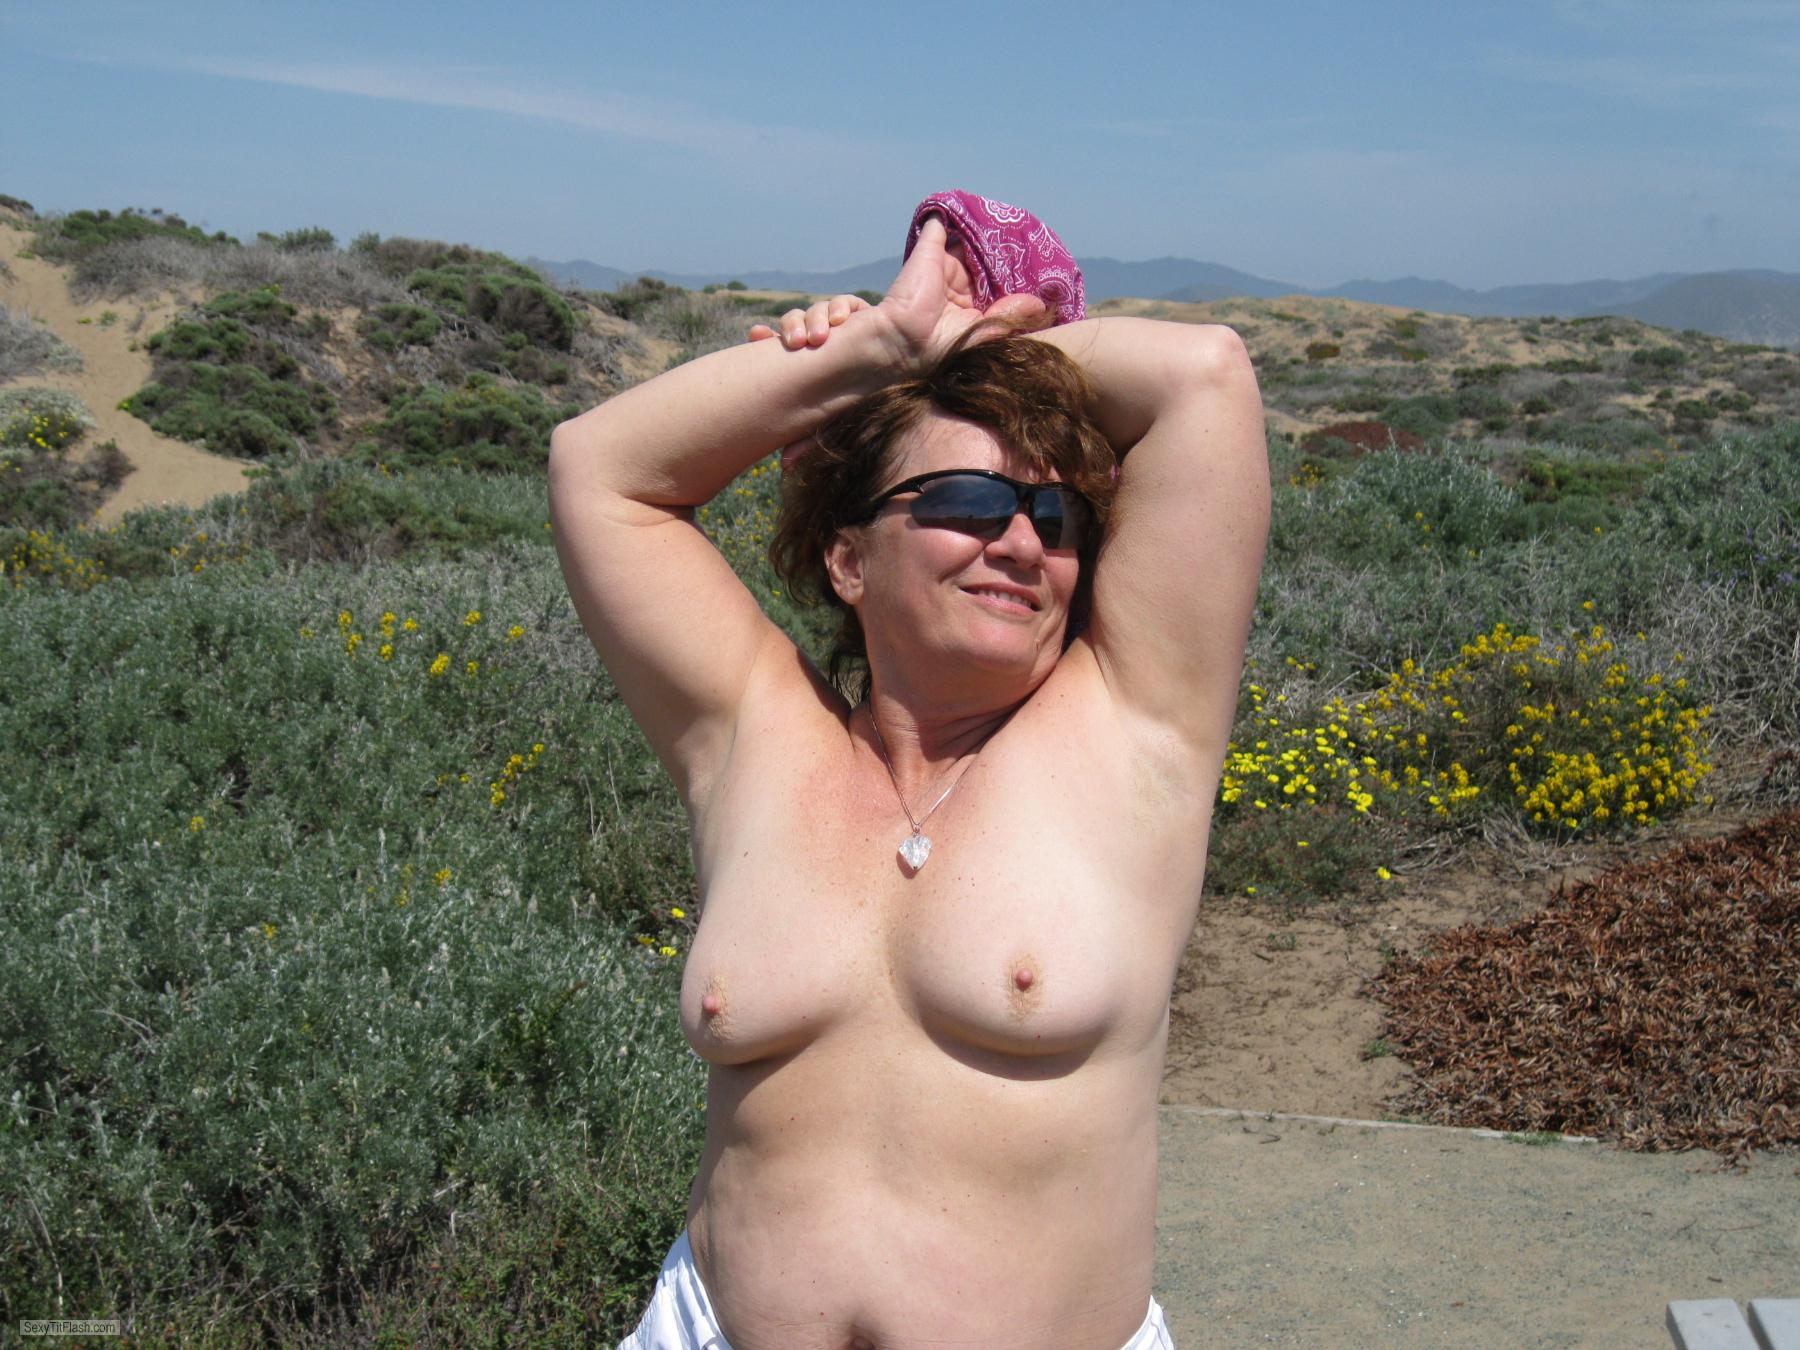 Tit Flash: My Tanlined Small Tits - Topless Karenkri from United States